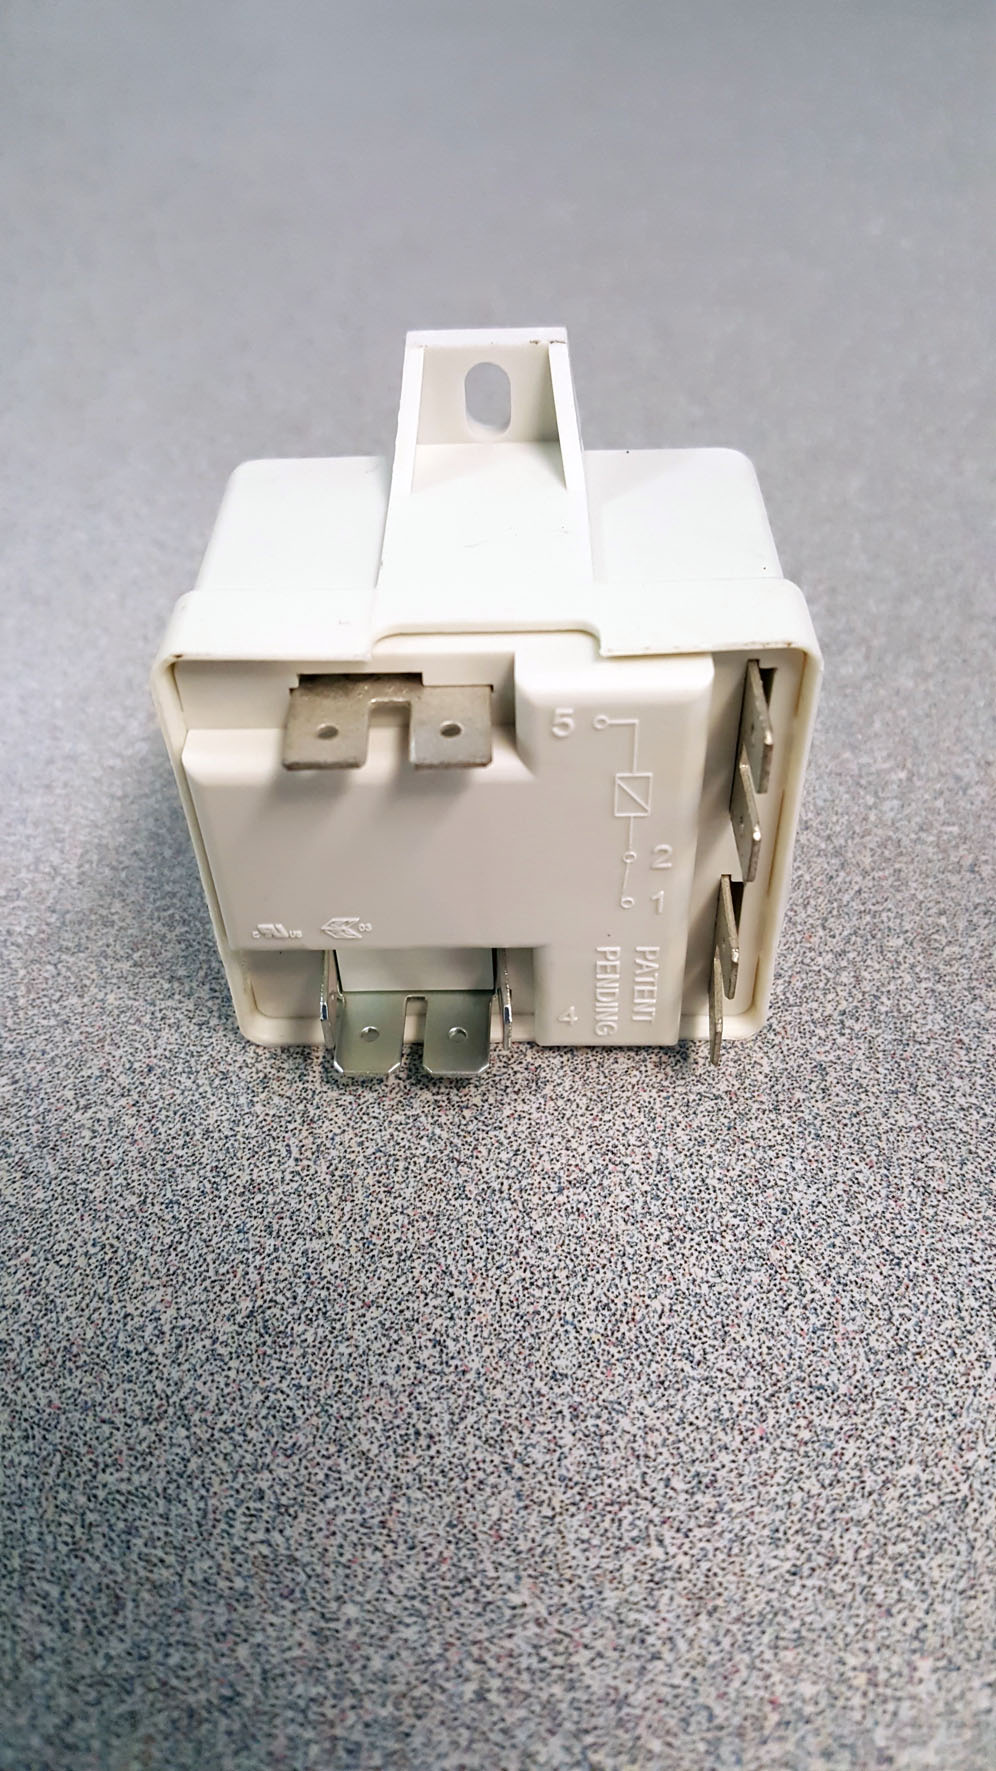 Hoffman, McLean 10104217SP Compressor Relay